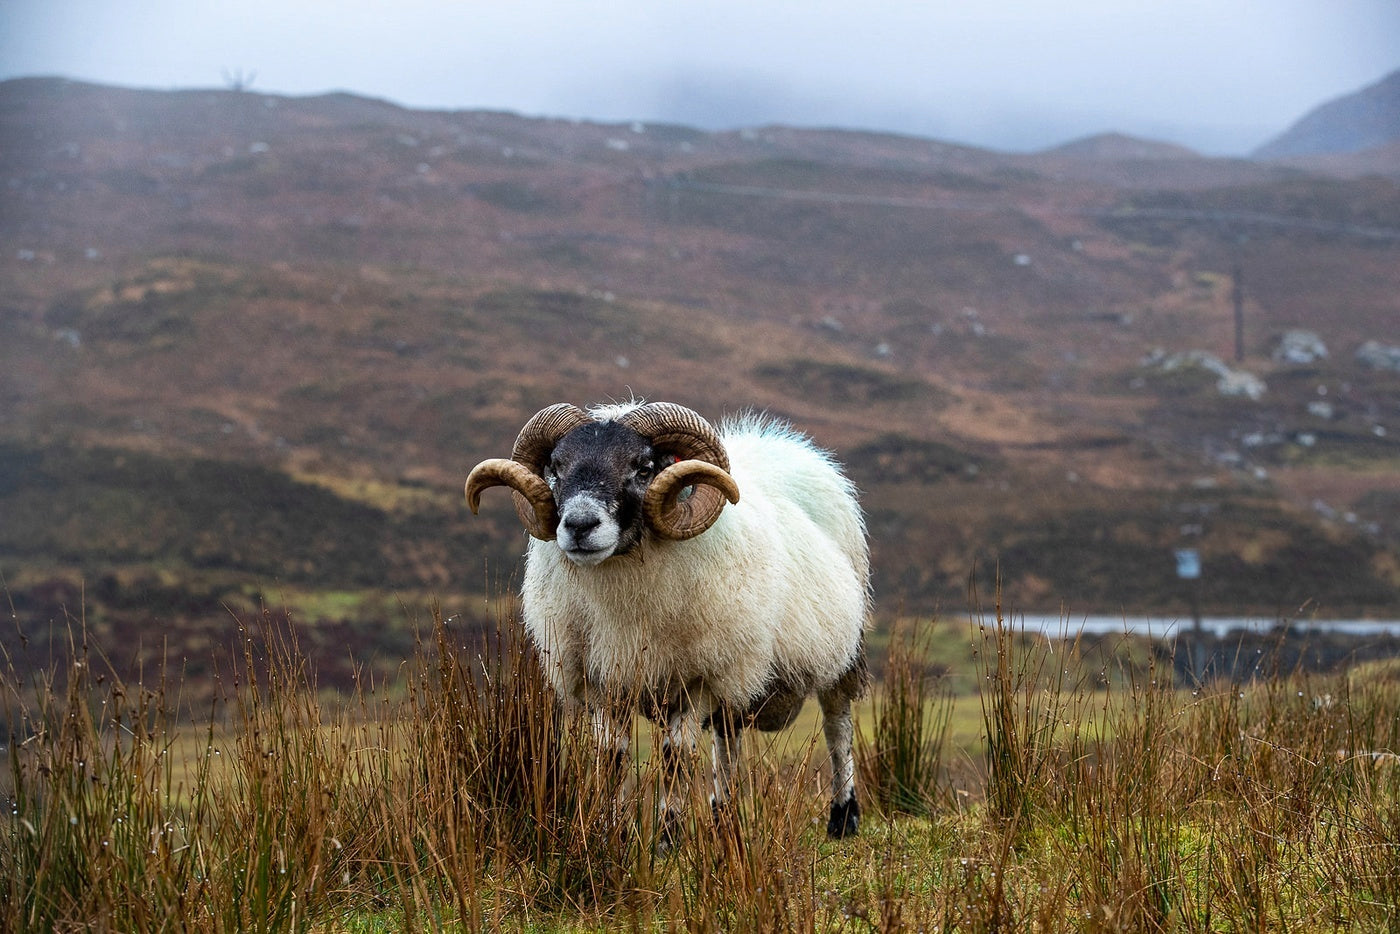 A Blackfaced Sheep or at home on the moors of the Outer Hebrides